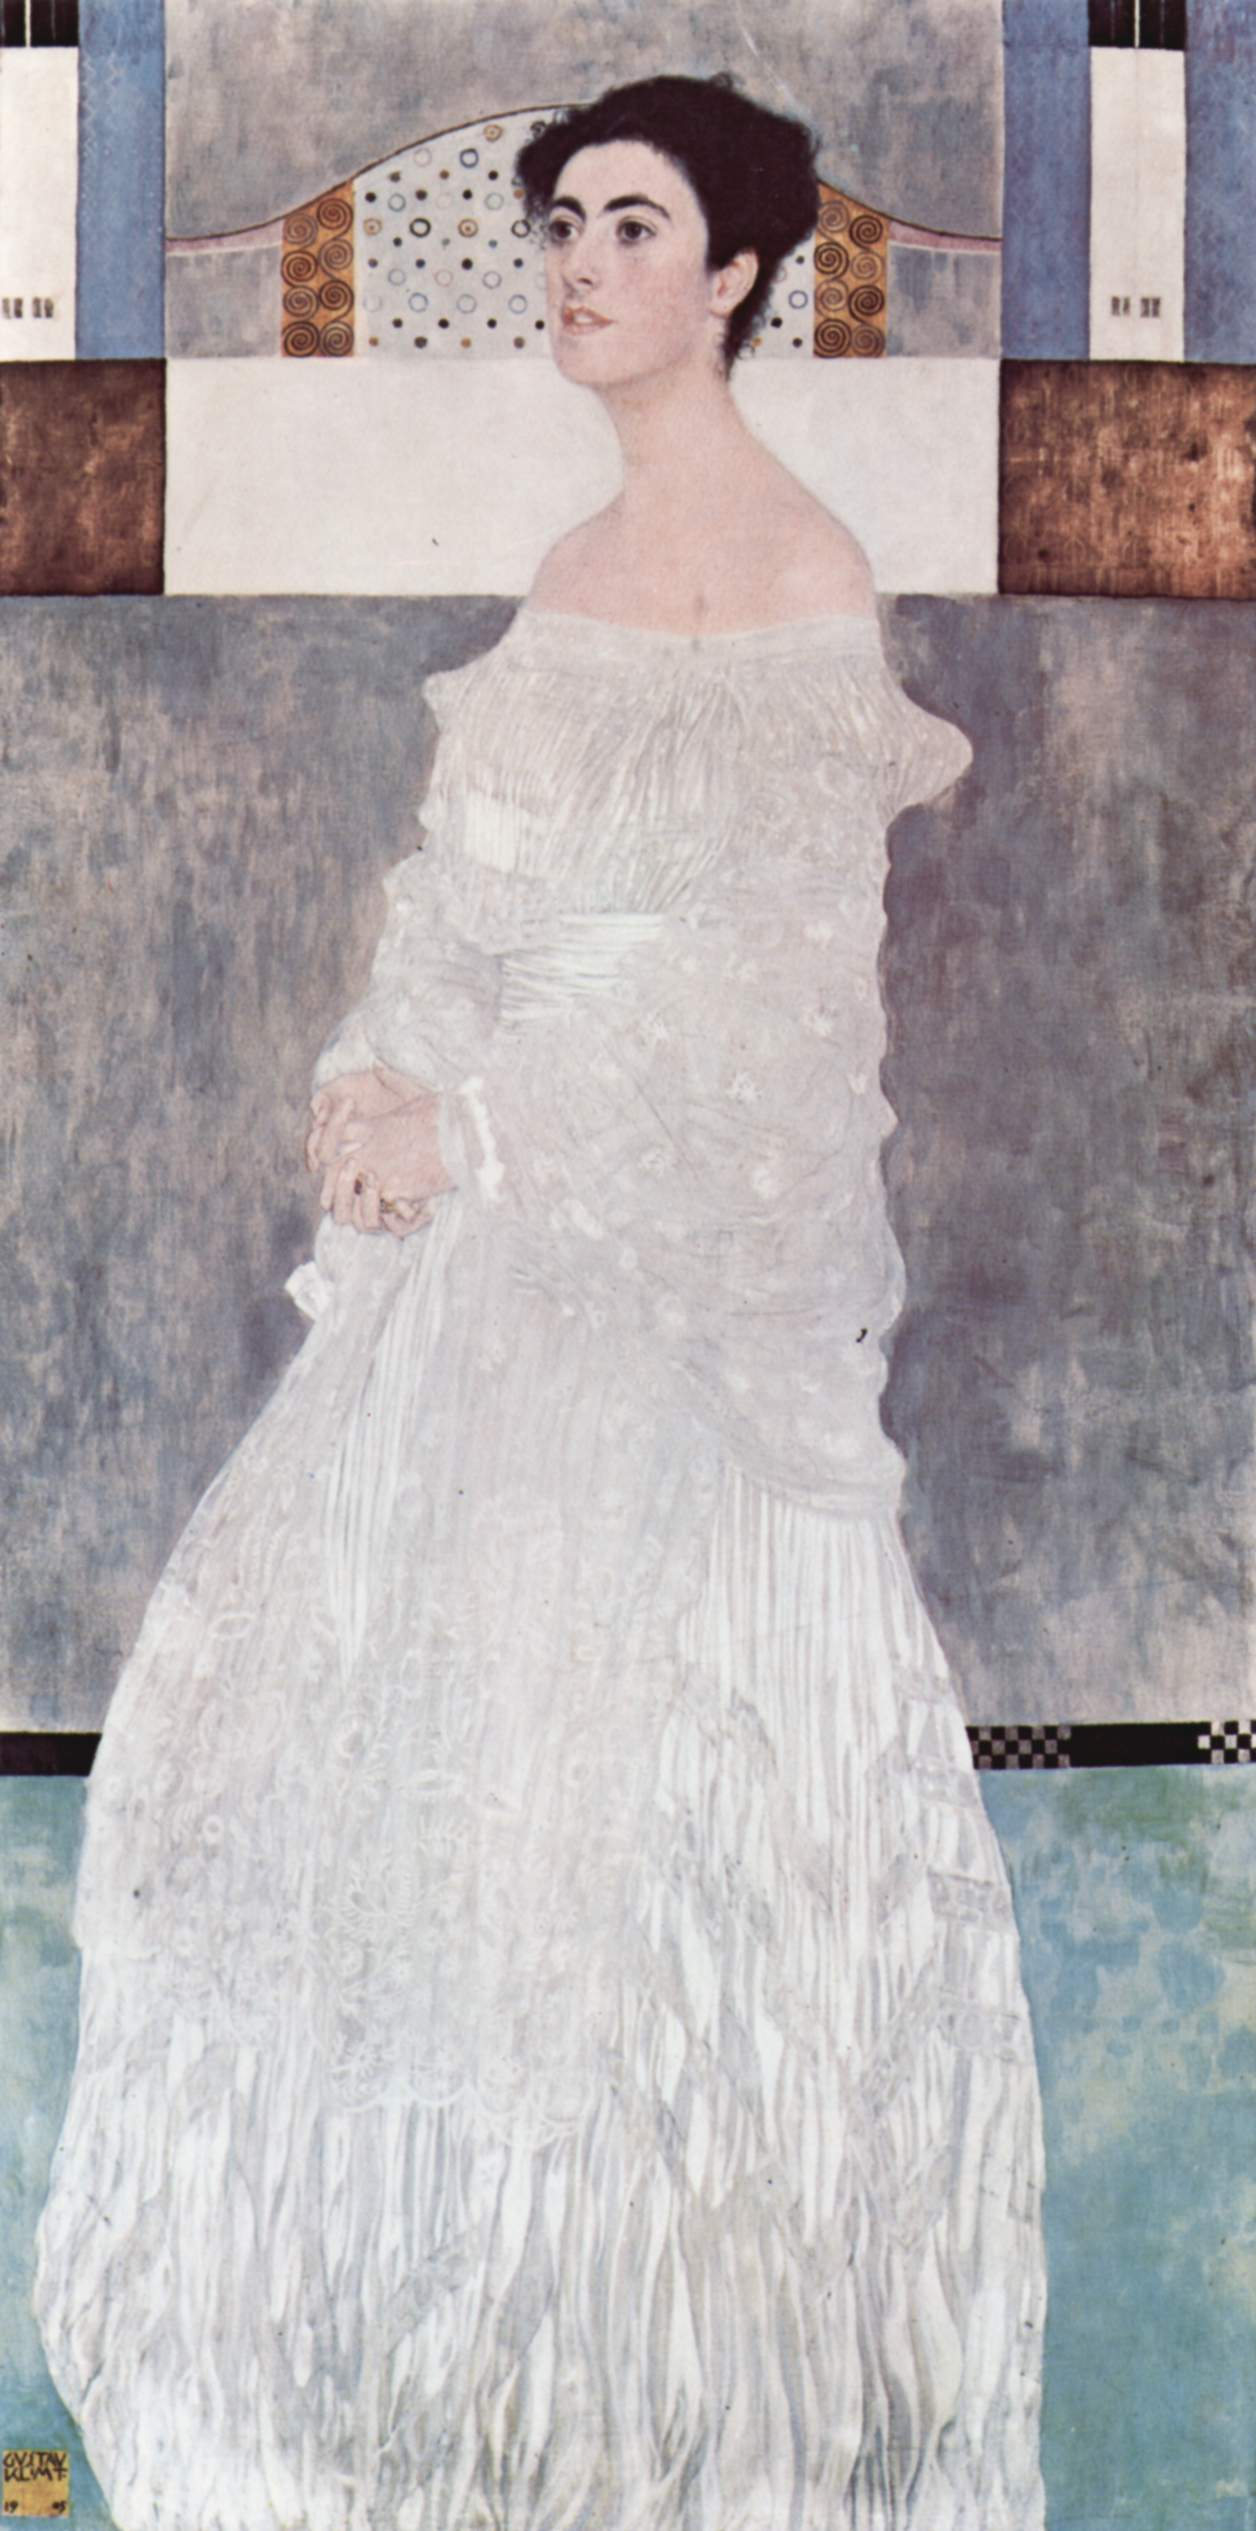 Portrait of Margaret Stonborough-Wittgenstein, 1905